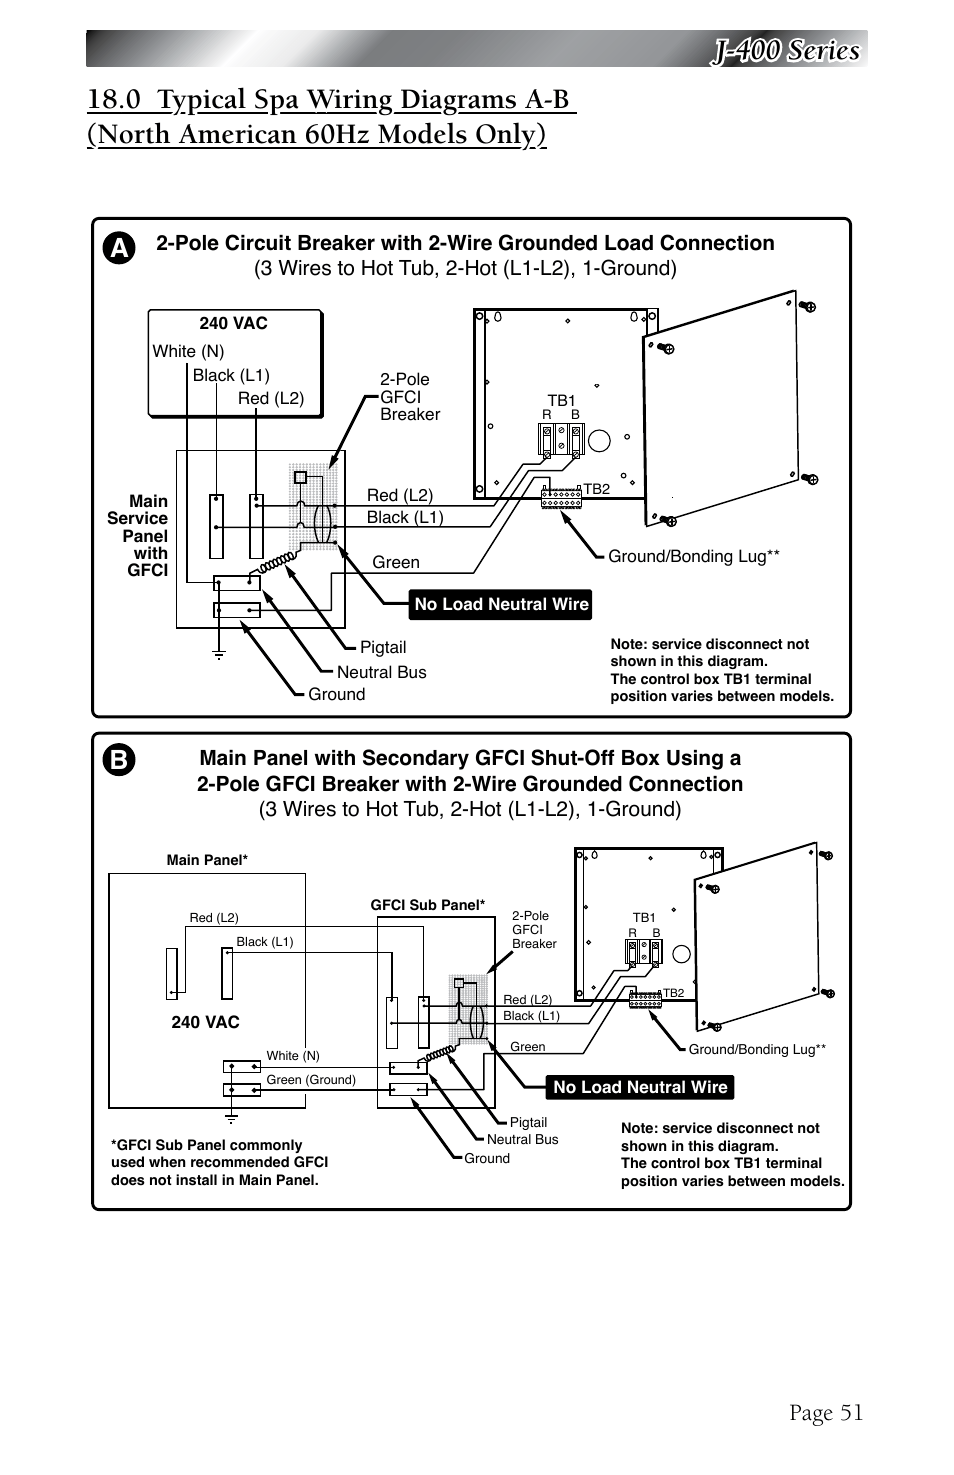 jacuzzi j 480 wiring diagram of the human nose and throat 400 series page 51 user manual 55 70